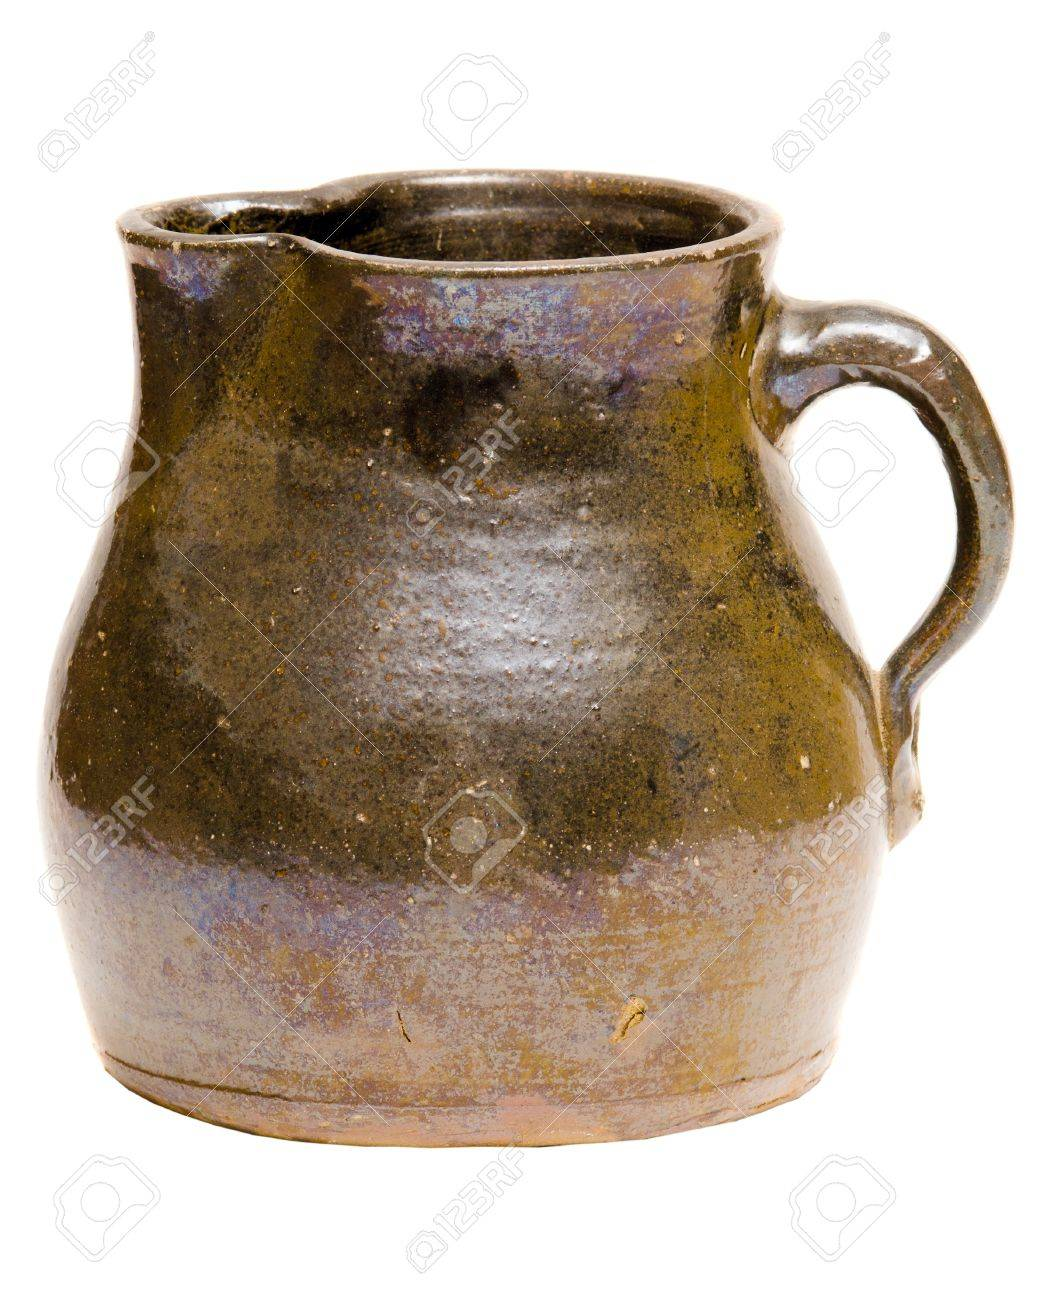 Antique Depression-era clay pitcher Stock Photo - 13476184